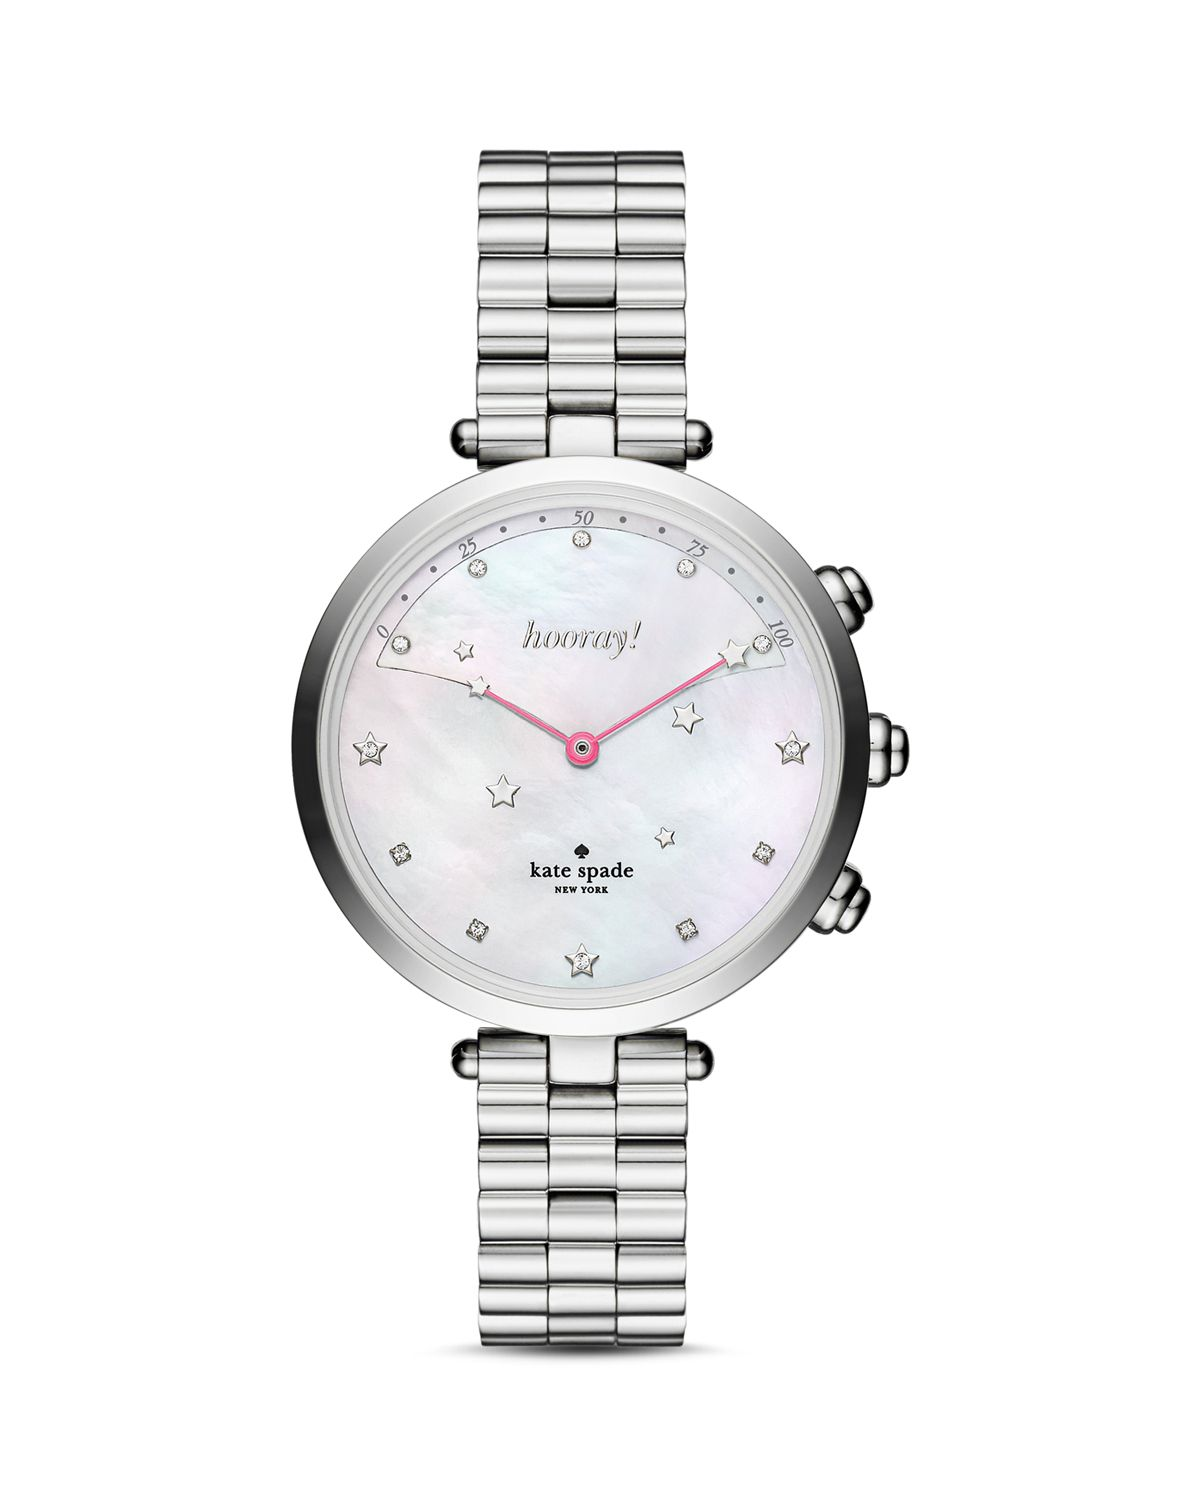 Holland Bracelet Hybrid Smartwatch, 37.5mm by Kate Spade New York